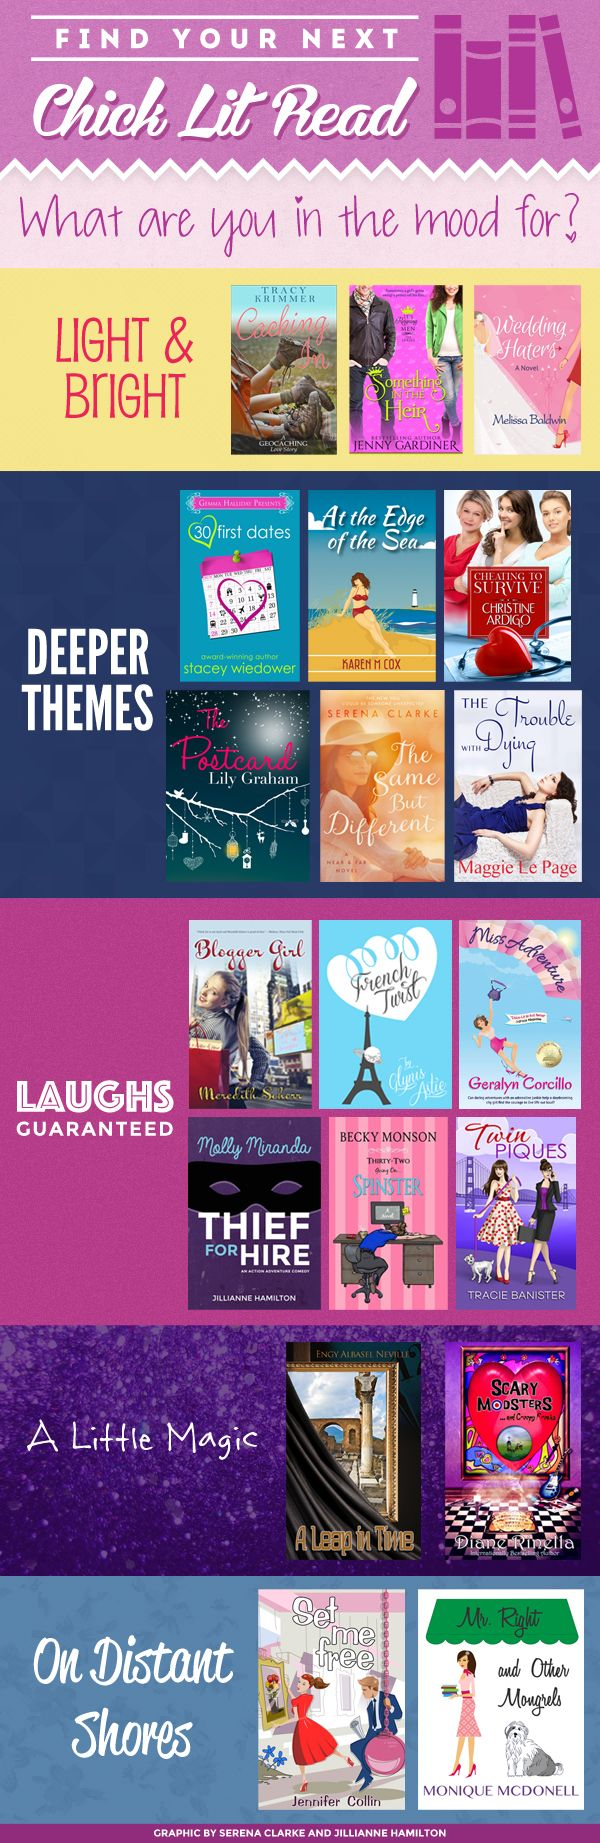 WIN FREE BOOKS! We're giving away 19 great chick lit ebooks this week for #ChickLitMay! Contest ends May 22nd, 2015. Good luck!